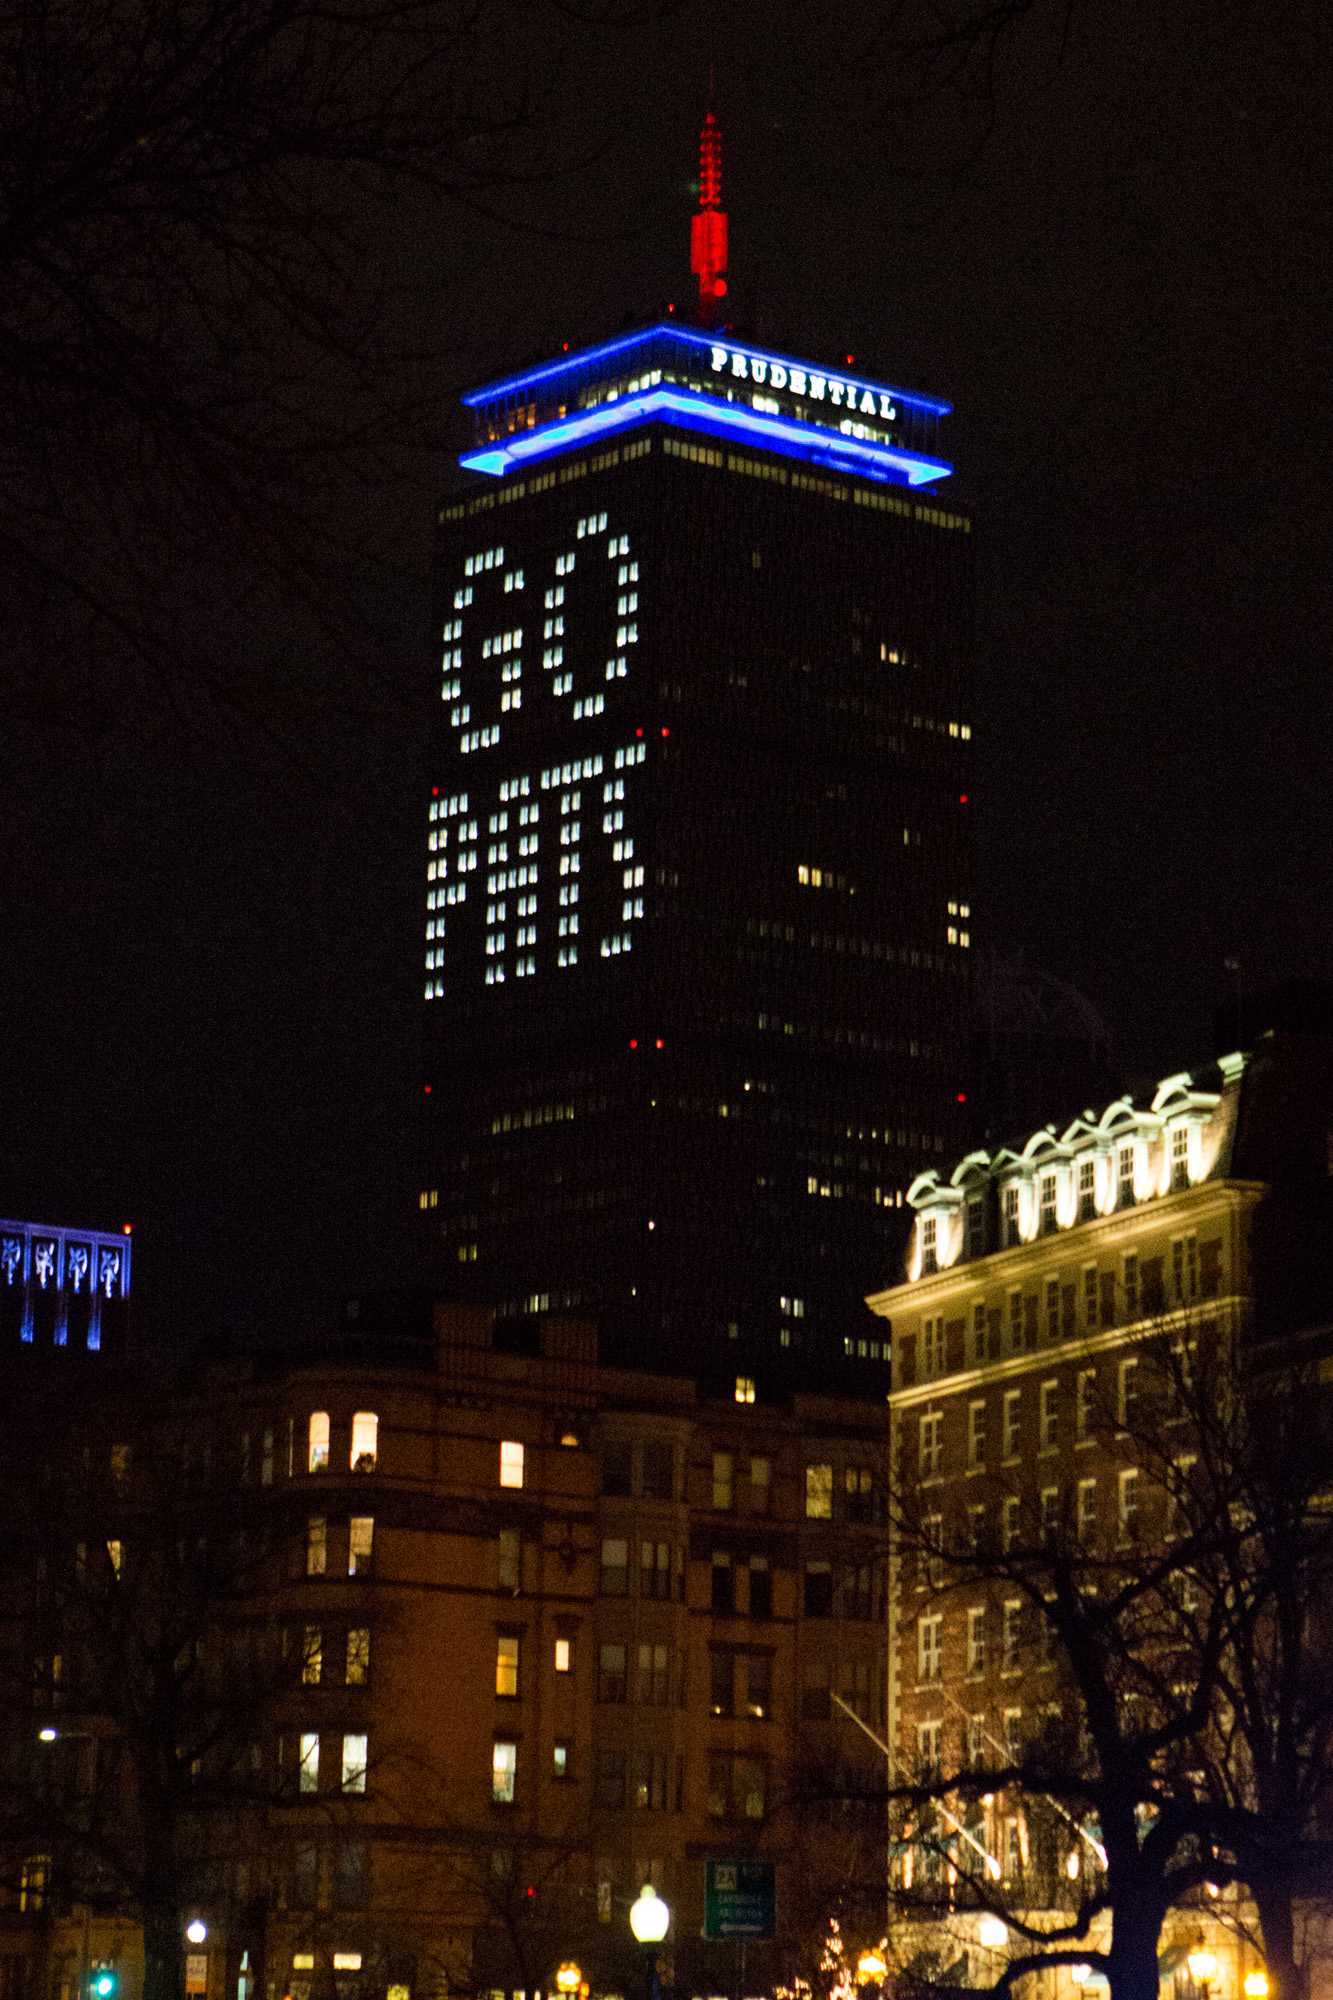 The+Prudential+Center+shows+its+support+of+the+Patriots+after+the+they+win+Super+Bowl+LI.